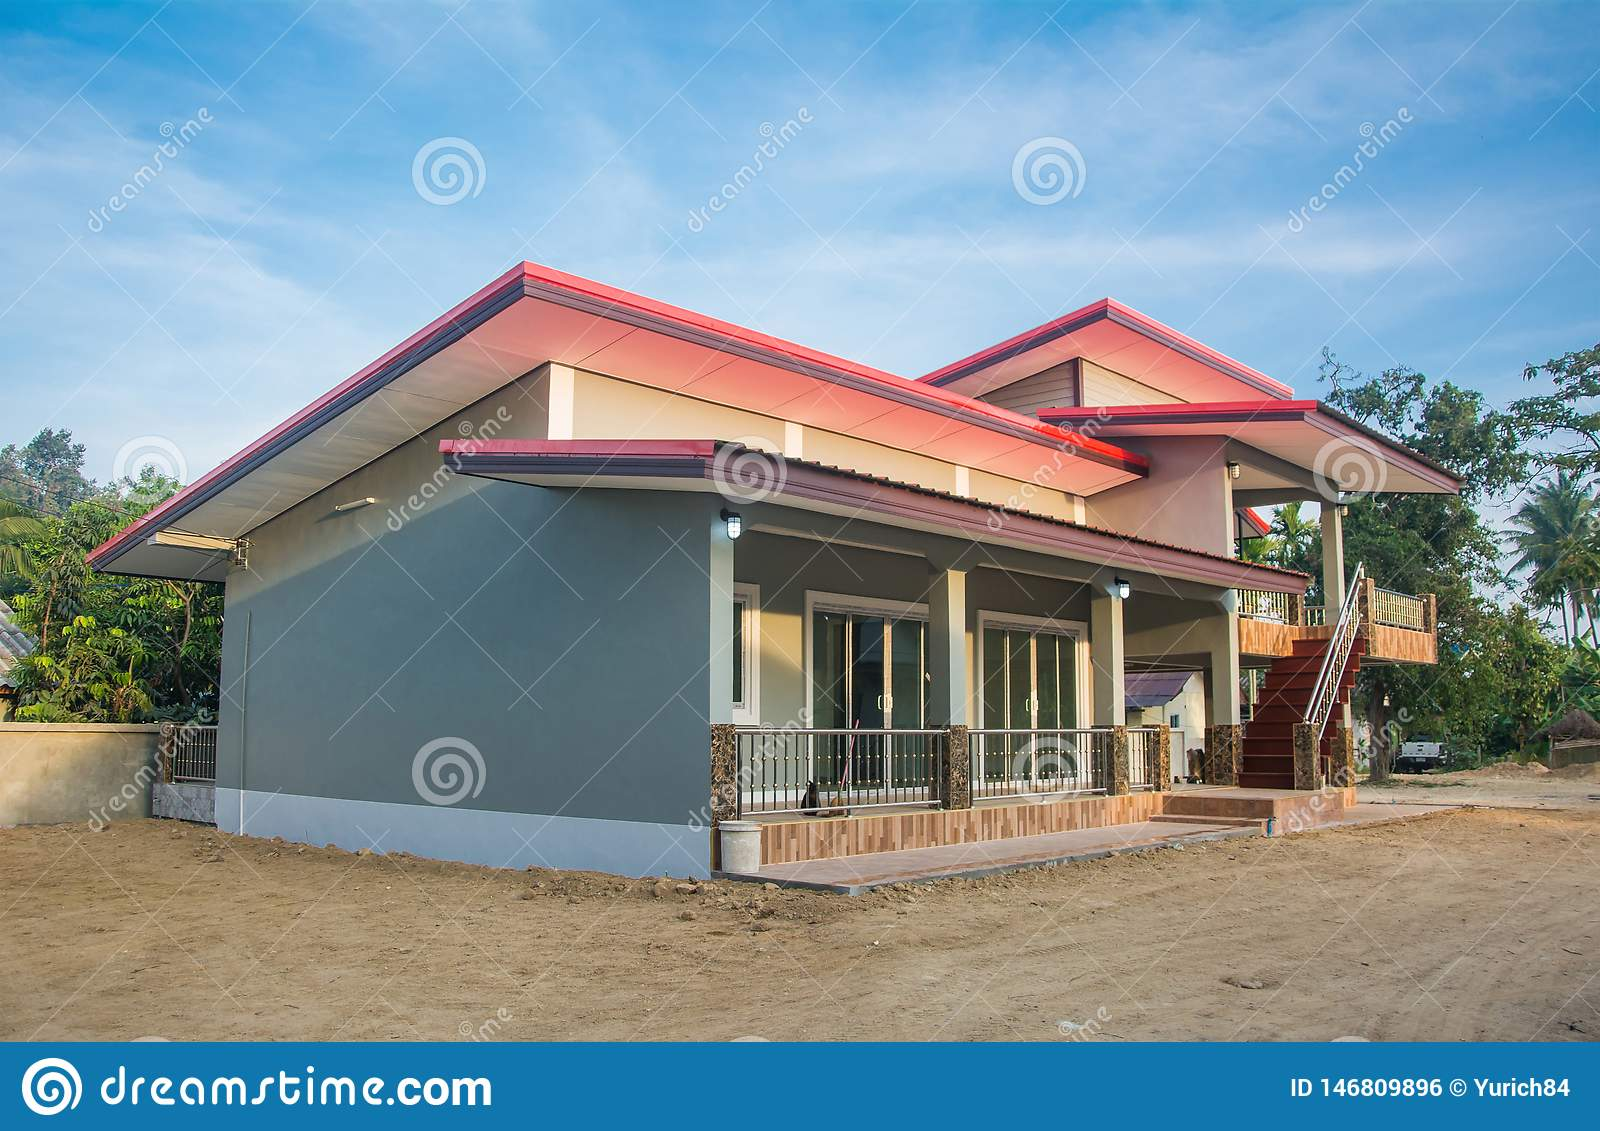 1 887 Modern Bungalow Photos Free Royalty Free Stock Photos From Dreamstime